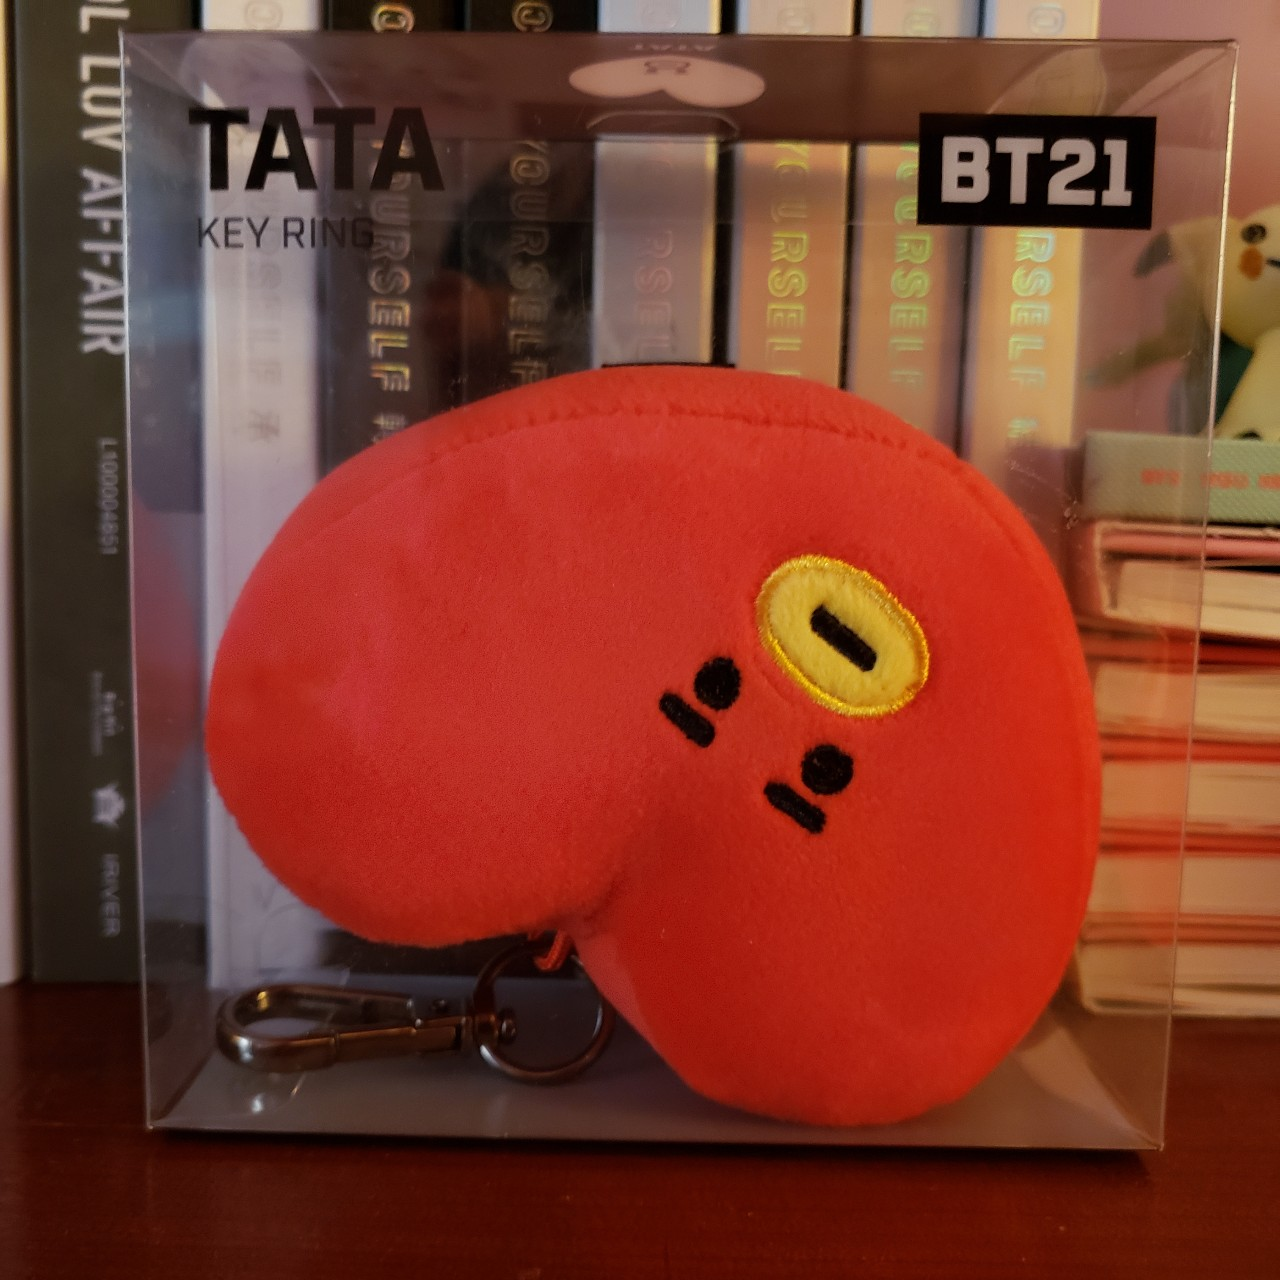 bt21 tata keyring never opened, will come in box    - Depop